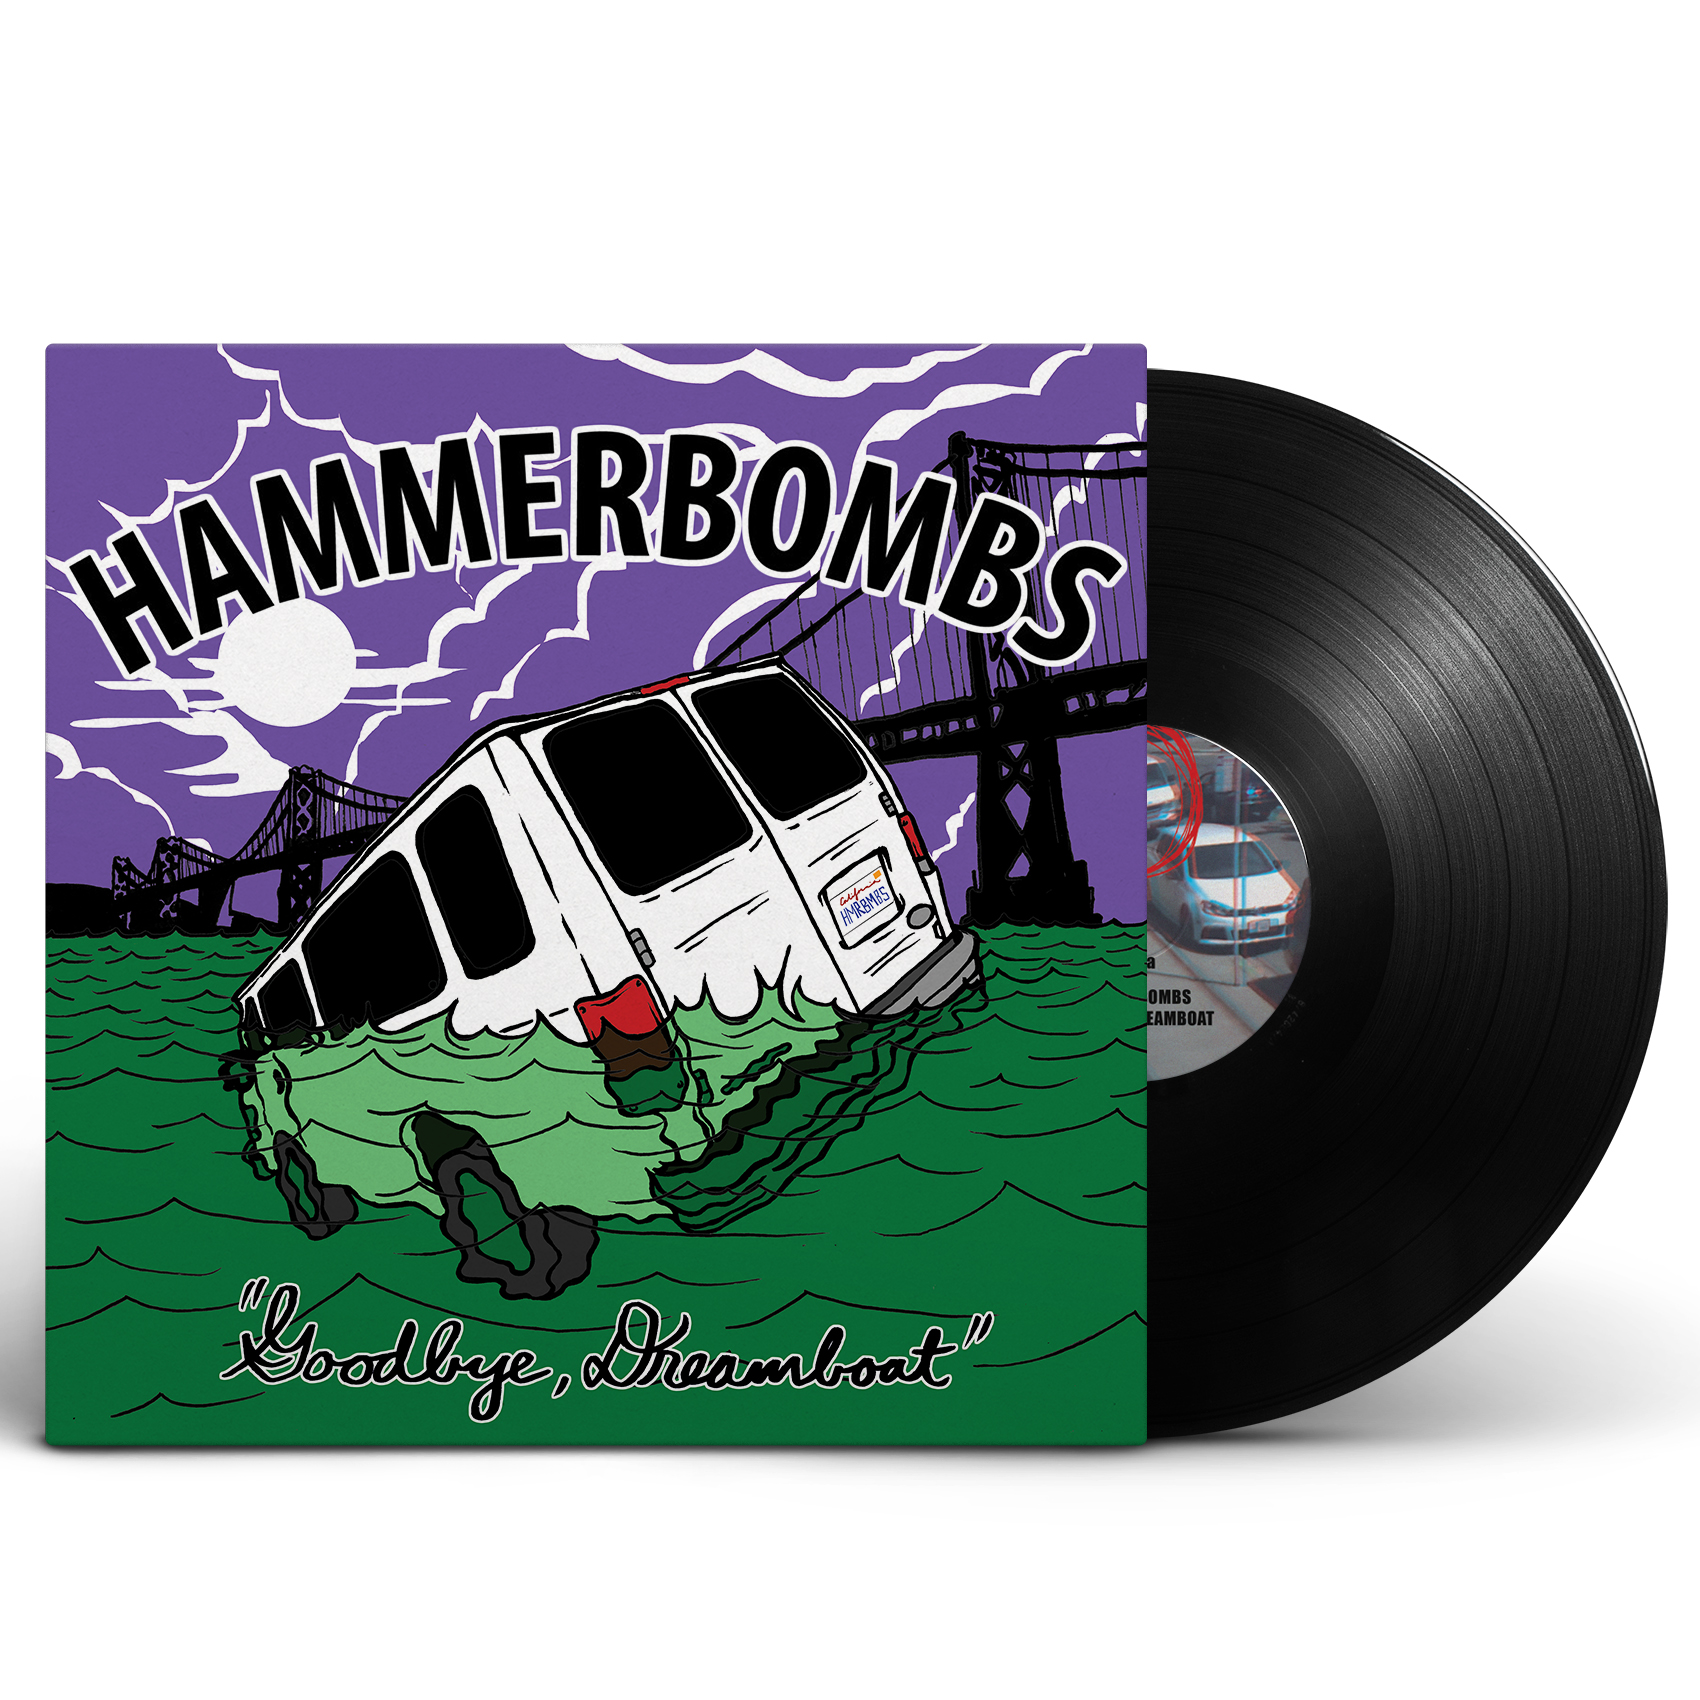 The Hammerbombs - Goodbye, Dreamboat